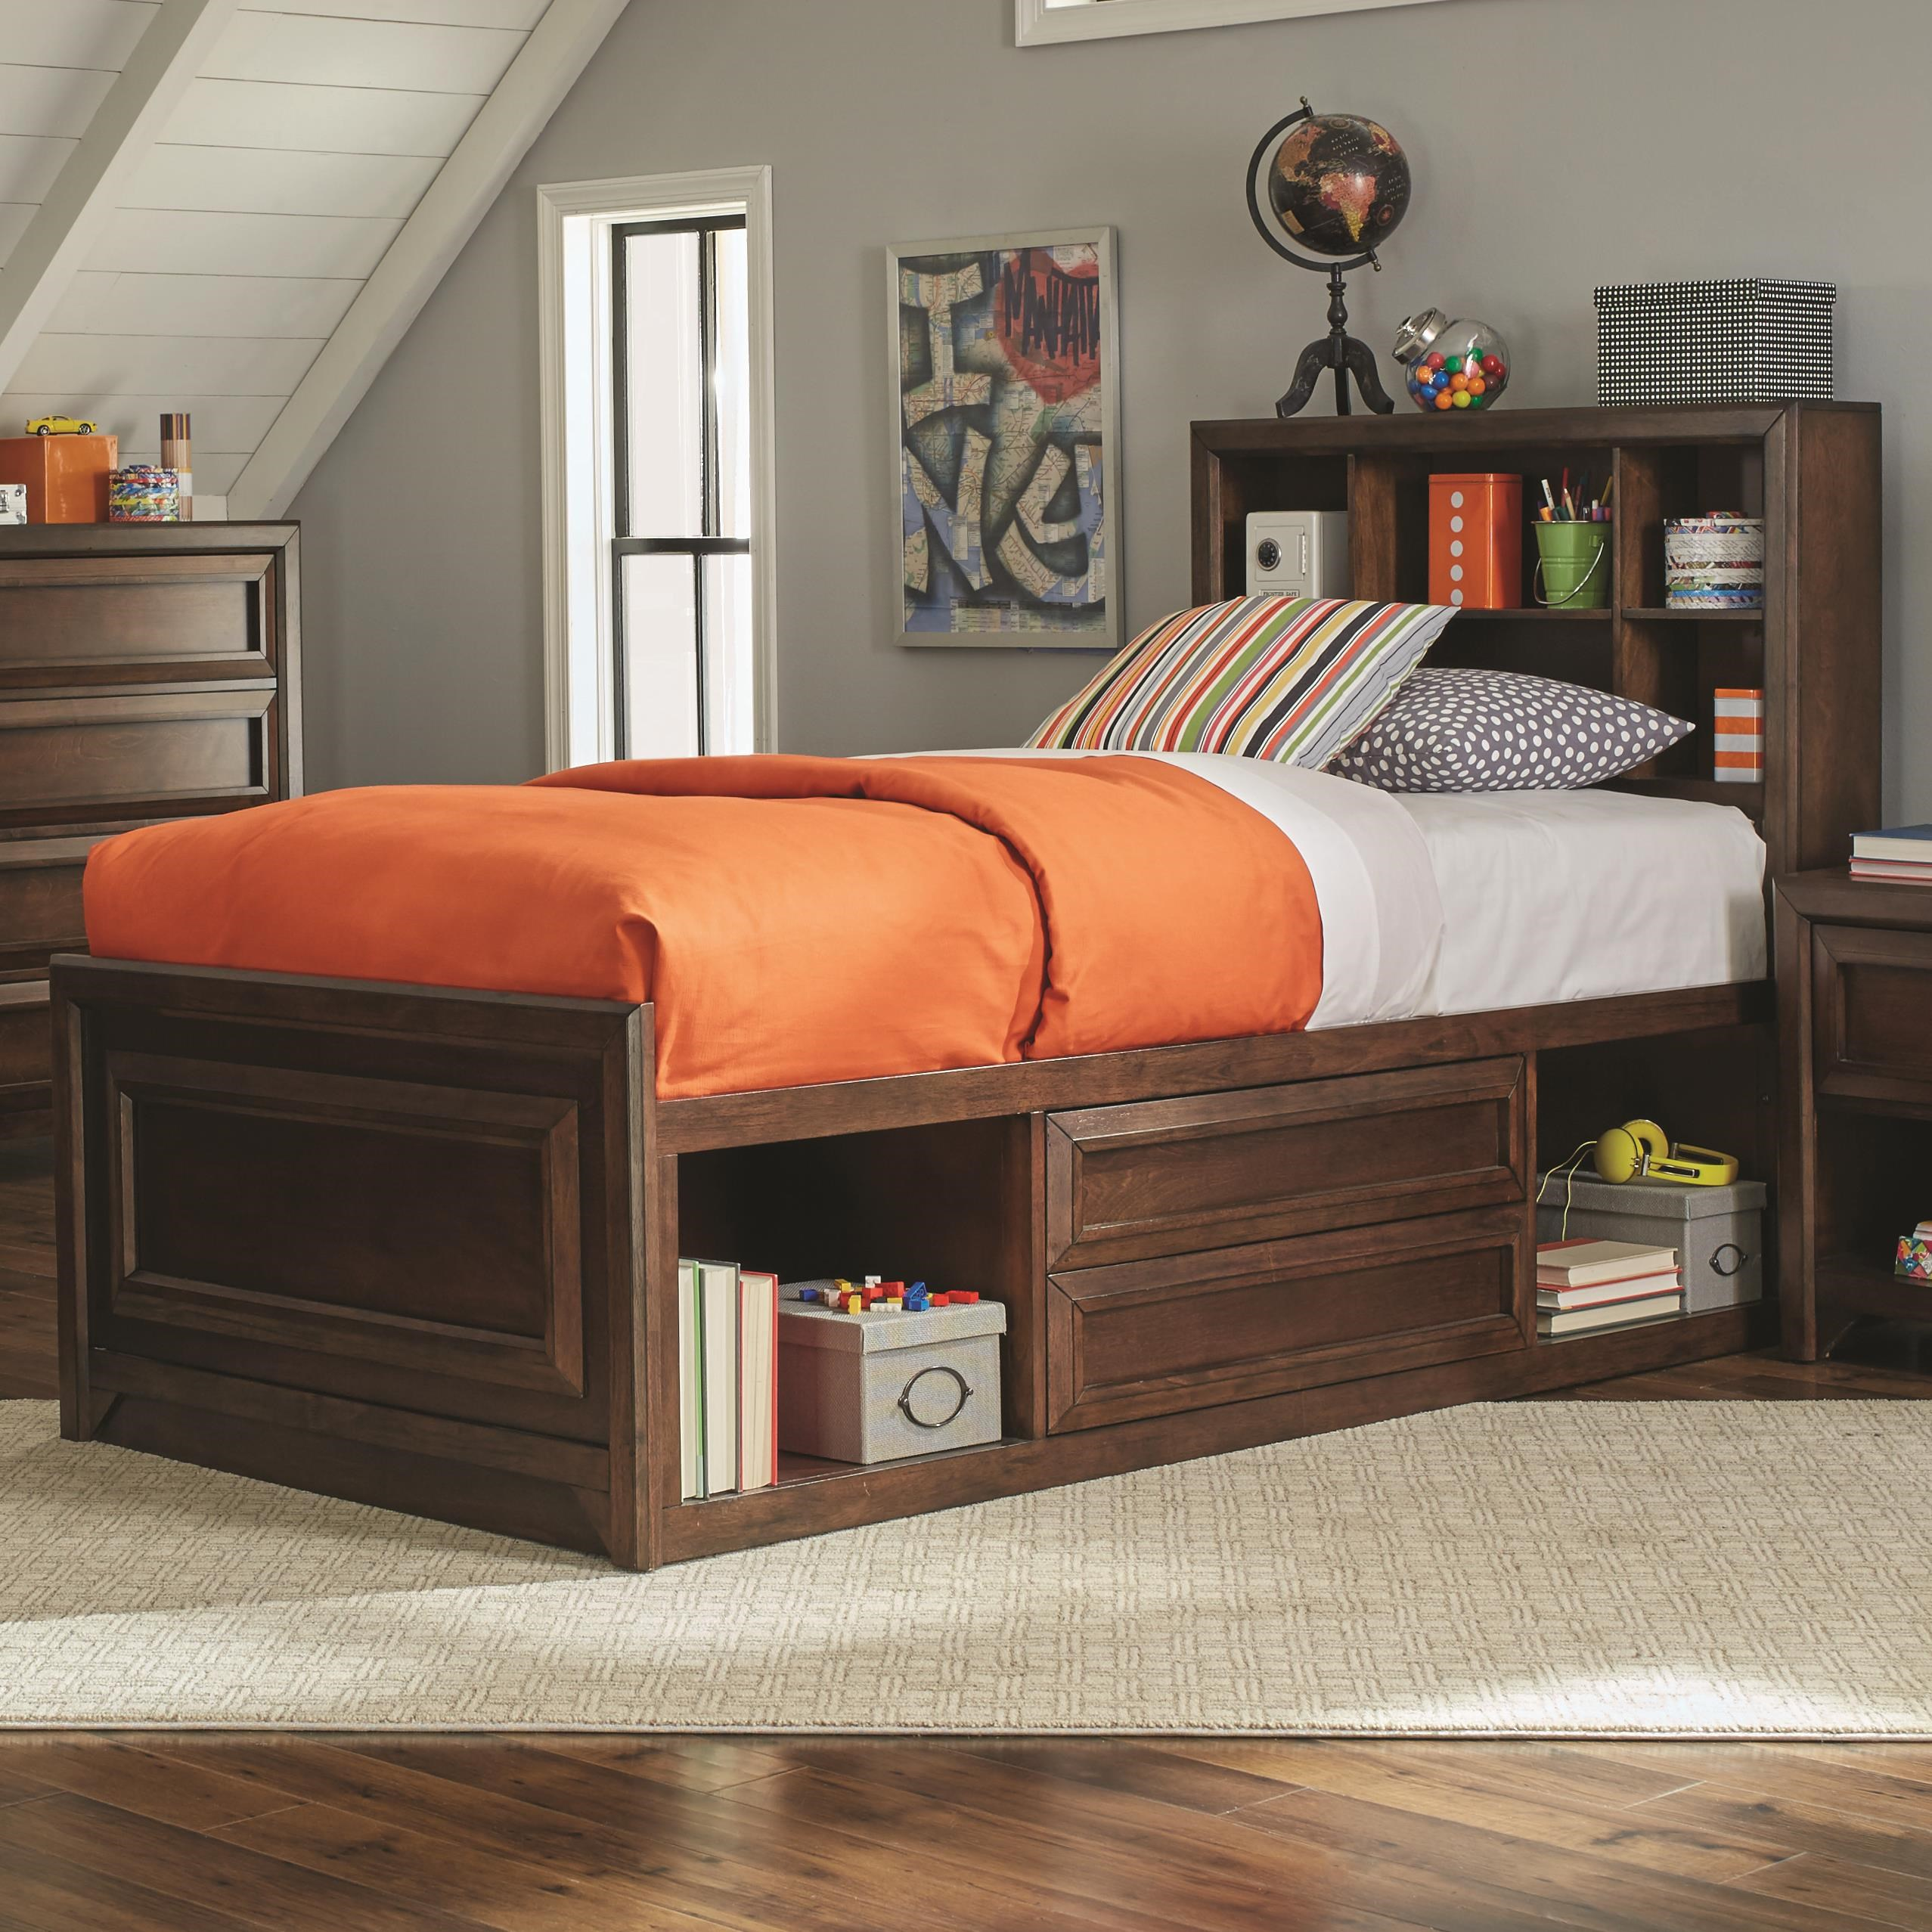 Coaster GreenoughTwin Bed; Coaster GreenoughTwin Bed  sc 1 st  Dunk u0026 Bright Furniture & Coaster Greenough 400820T Twin Bed with Bookcase Storage | Dunk ...